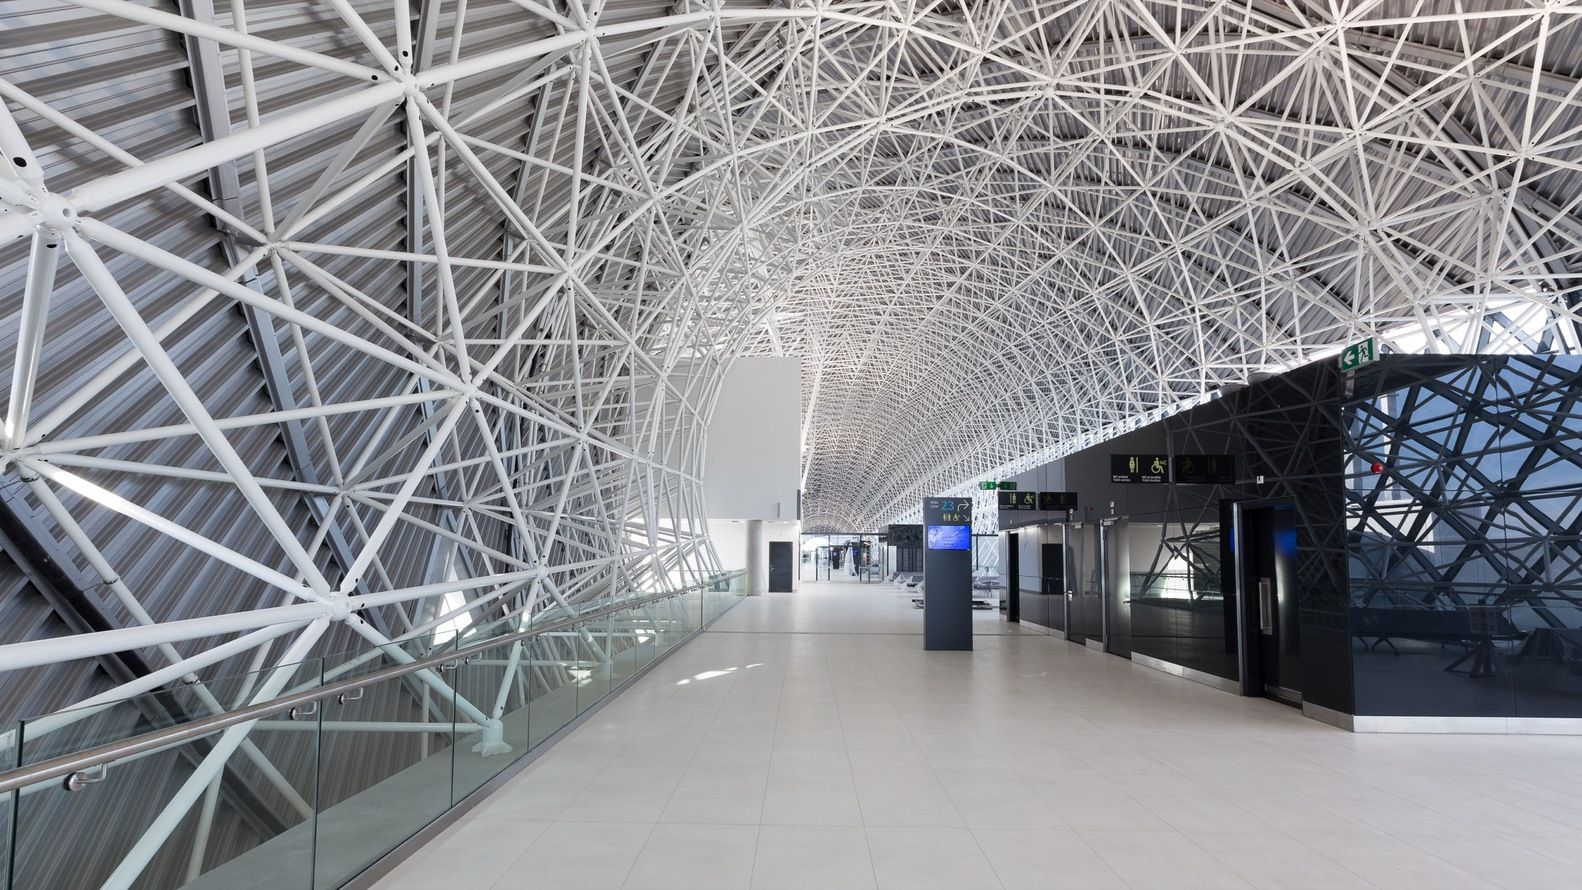 Gallery Of Zagreb Airport Kincl Neidhardt Institut Igh 1 Zagreb Architecture Landmark Architecture